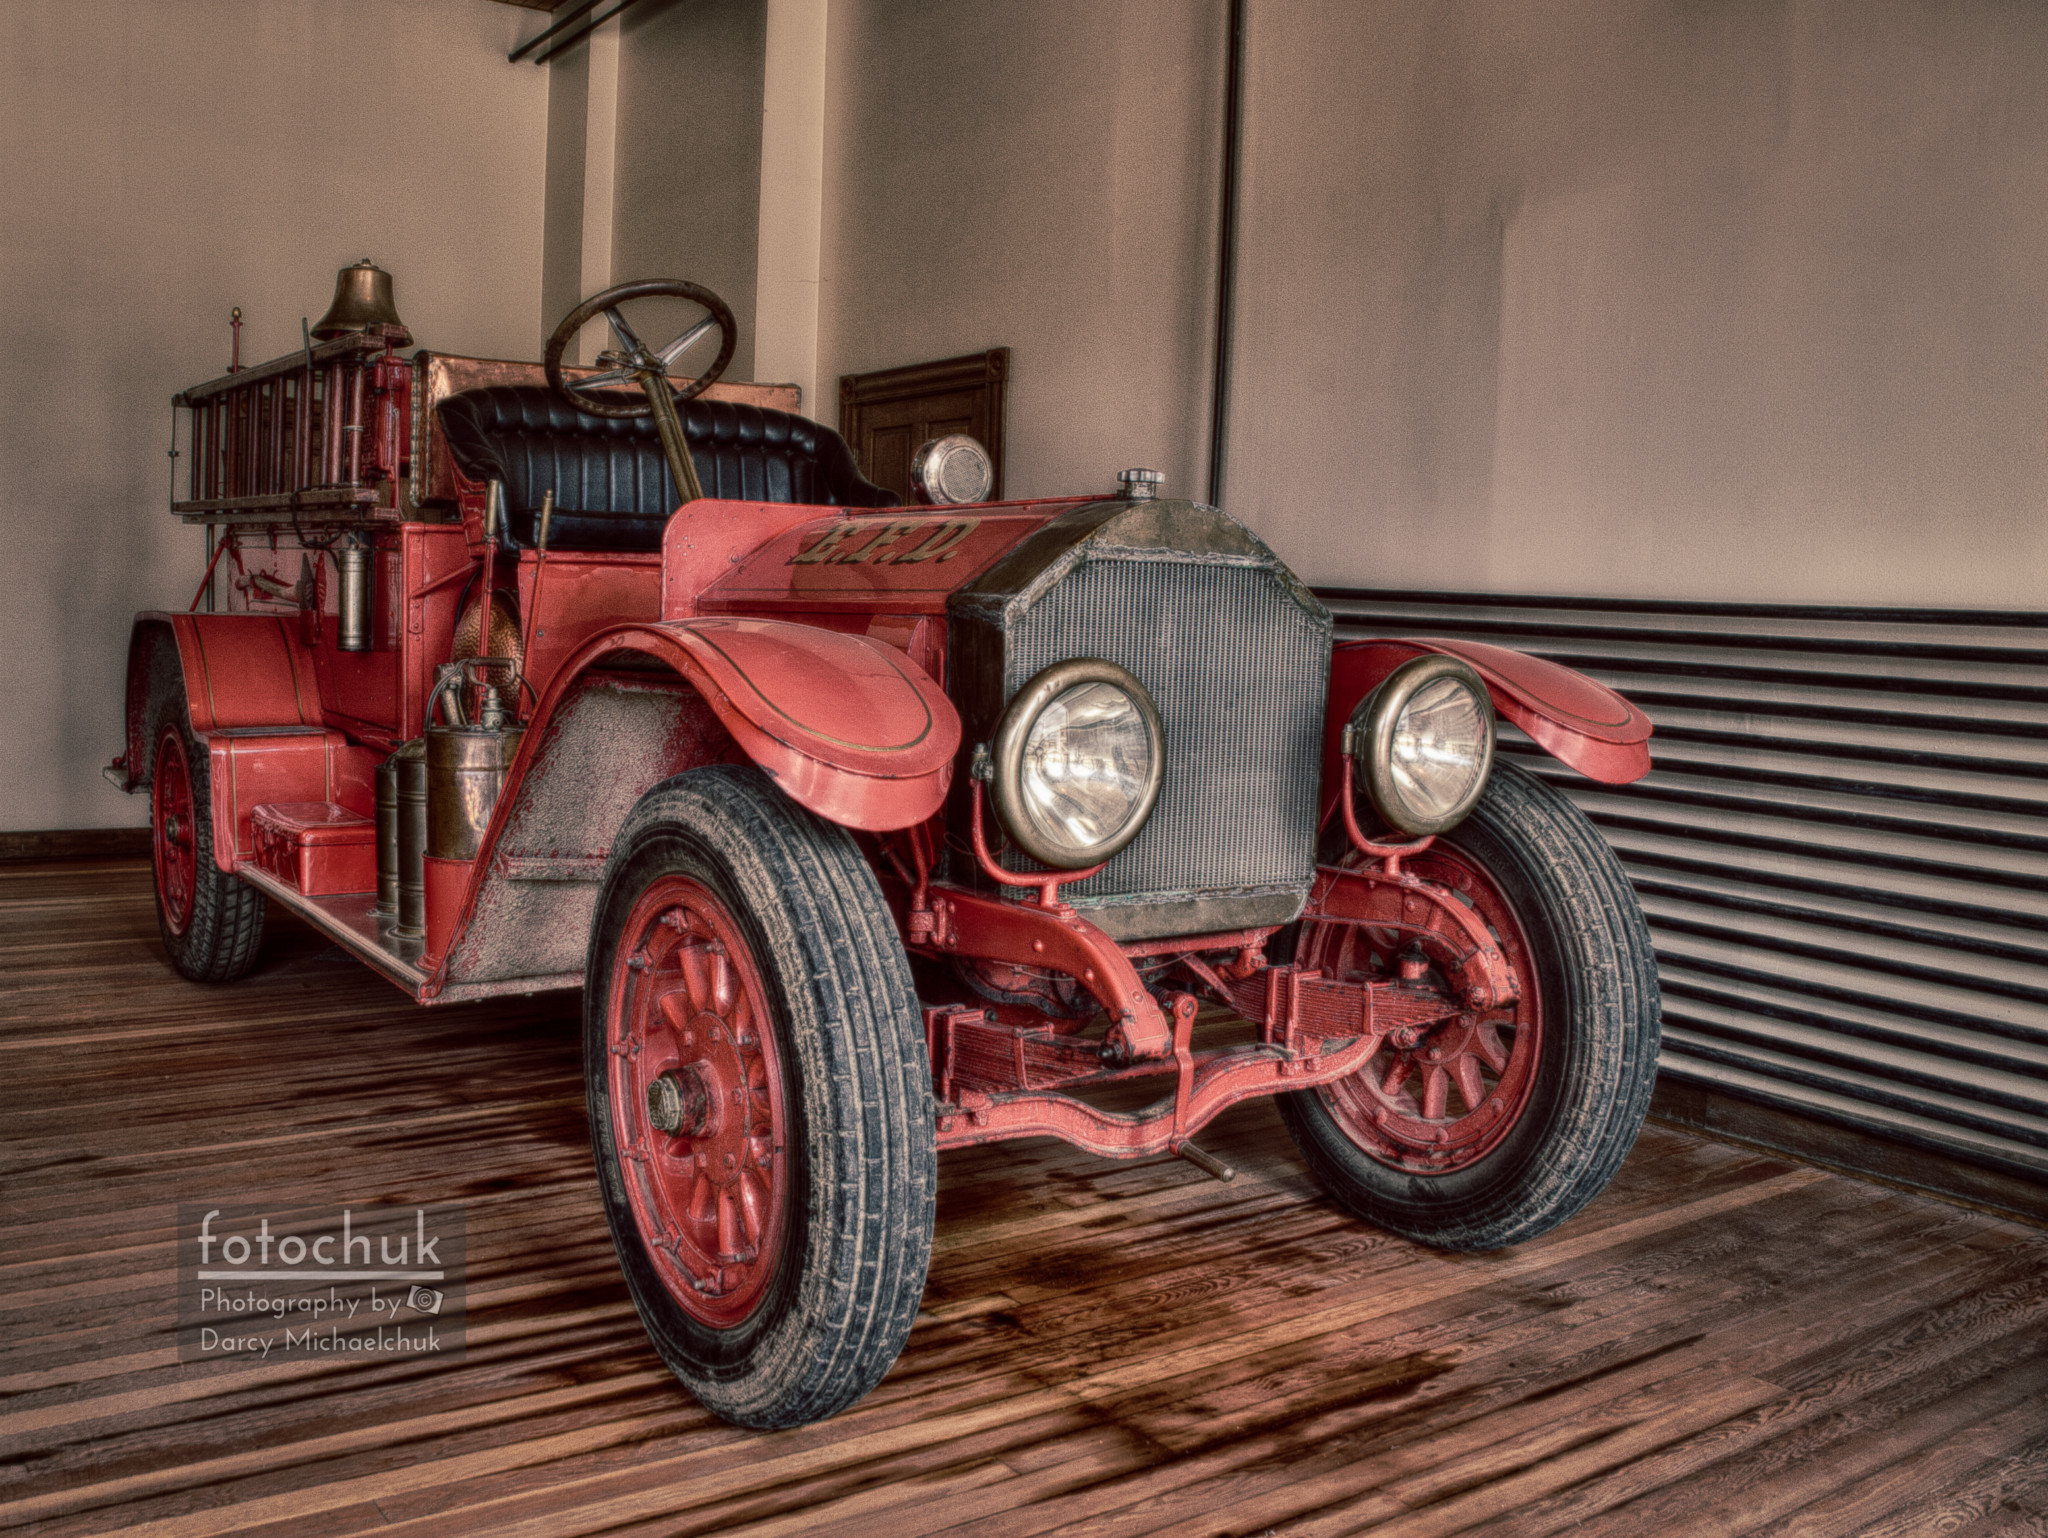 Vintage Fire Truck  by Darcy Michaelchuk